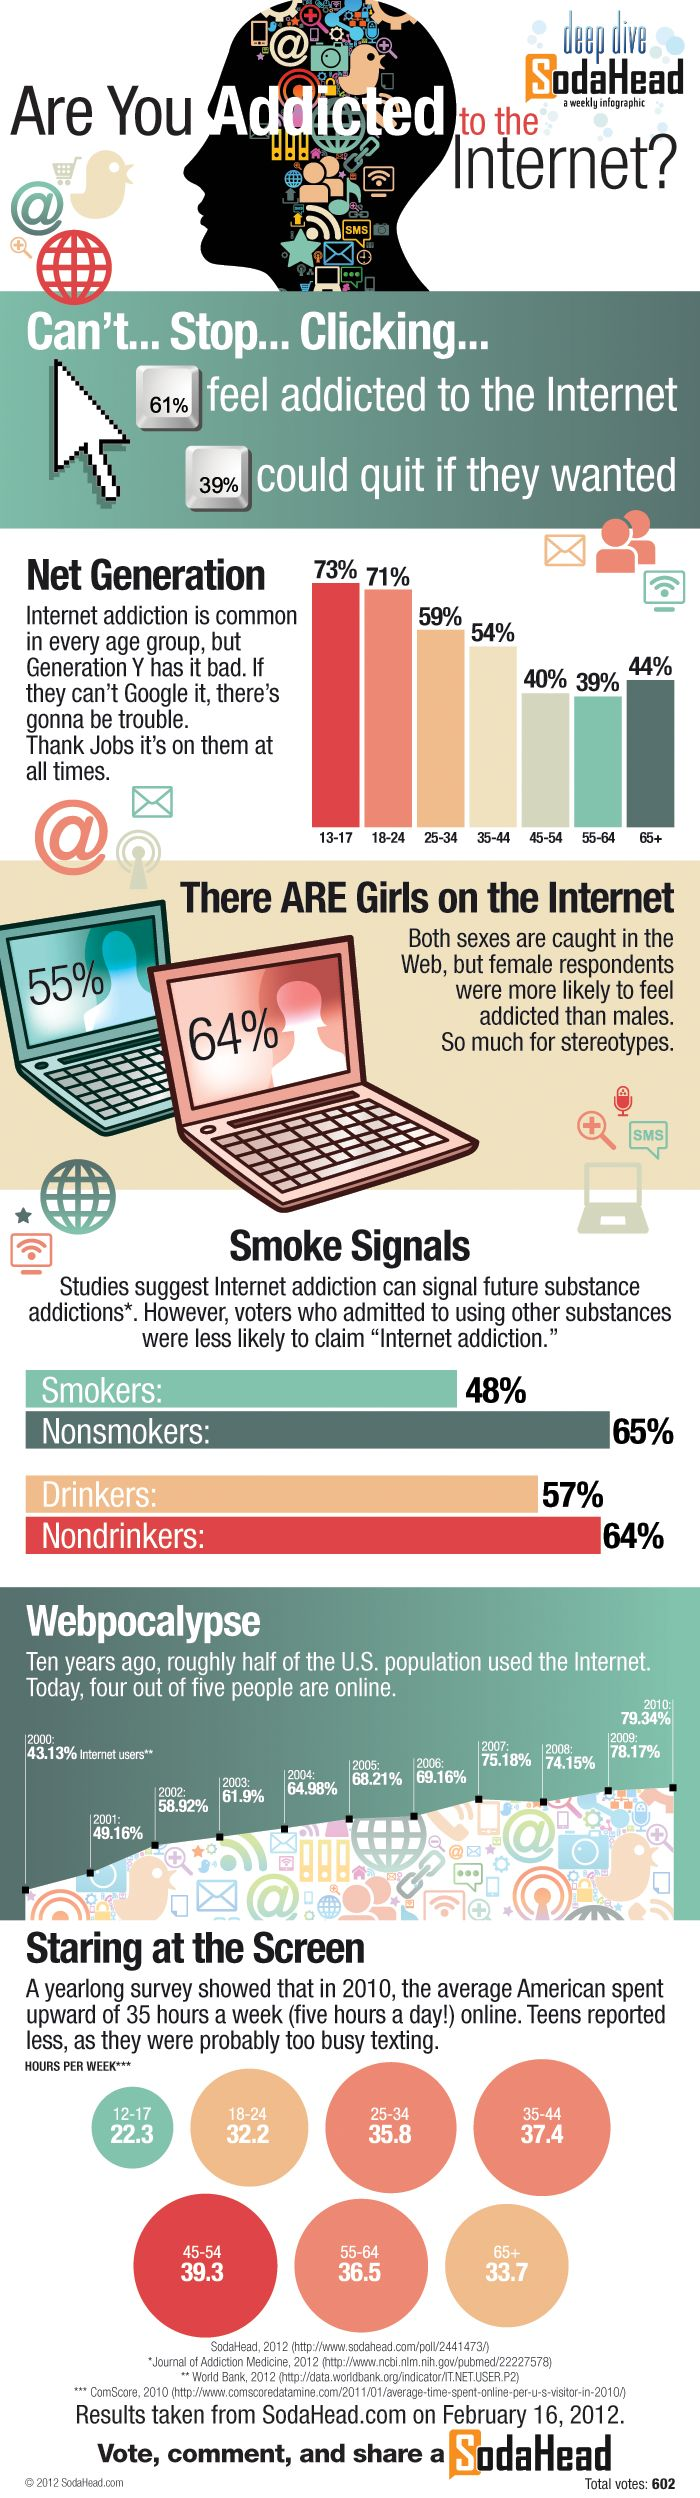 Why Most People Say They're Addicted to the Internet [INFOGRAPHIC]